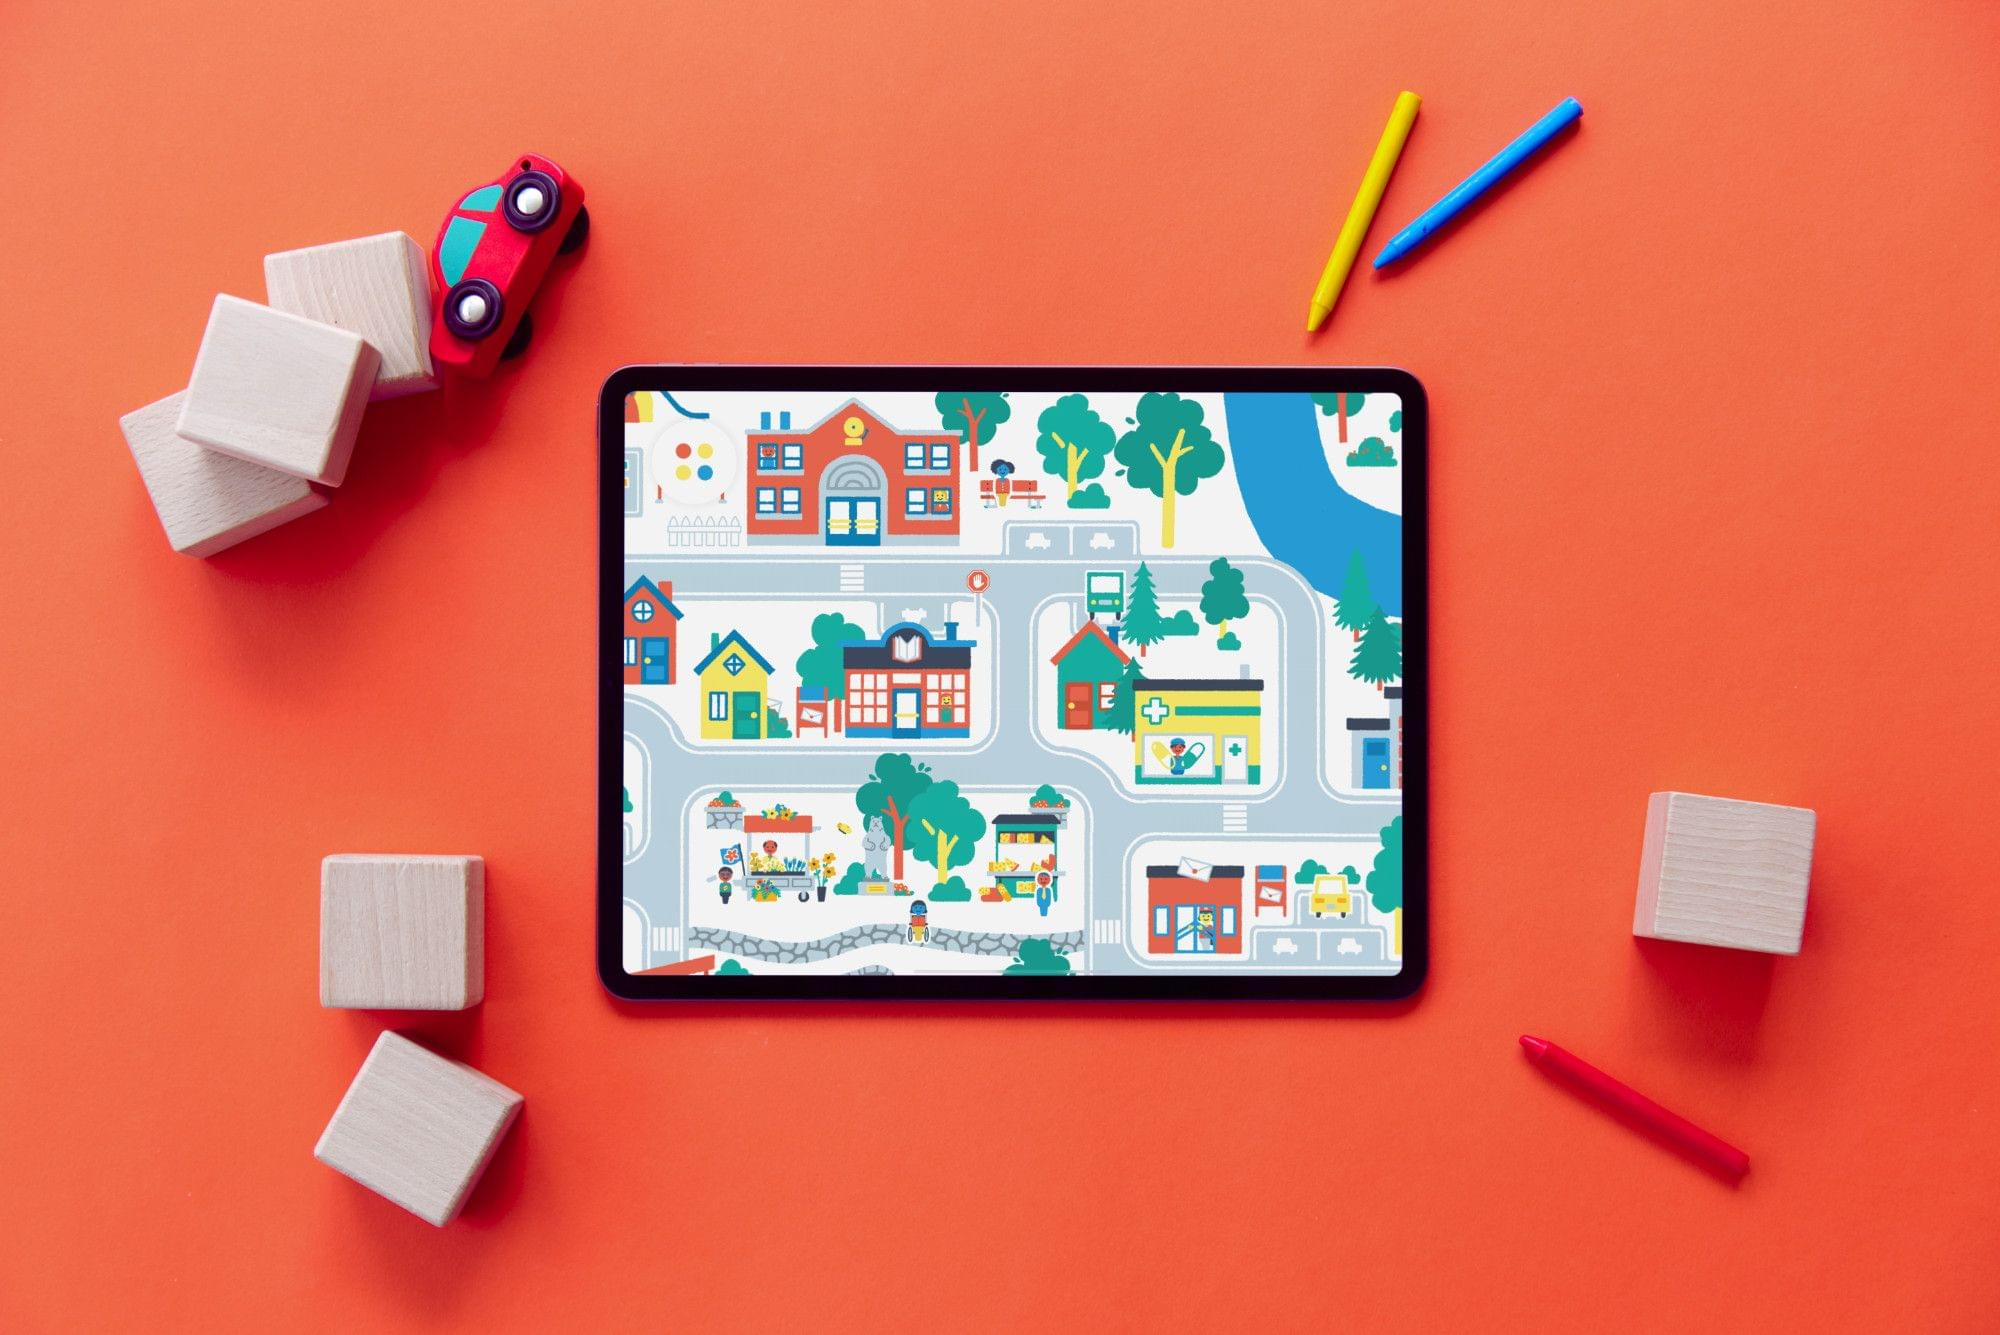 Snowman Announces New Creative Studio and Its First App, Pok Pok Playroom, A Digital Play Experience for Kids